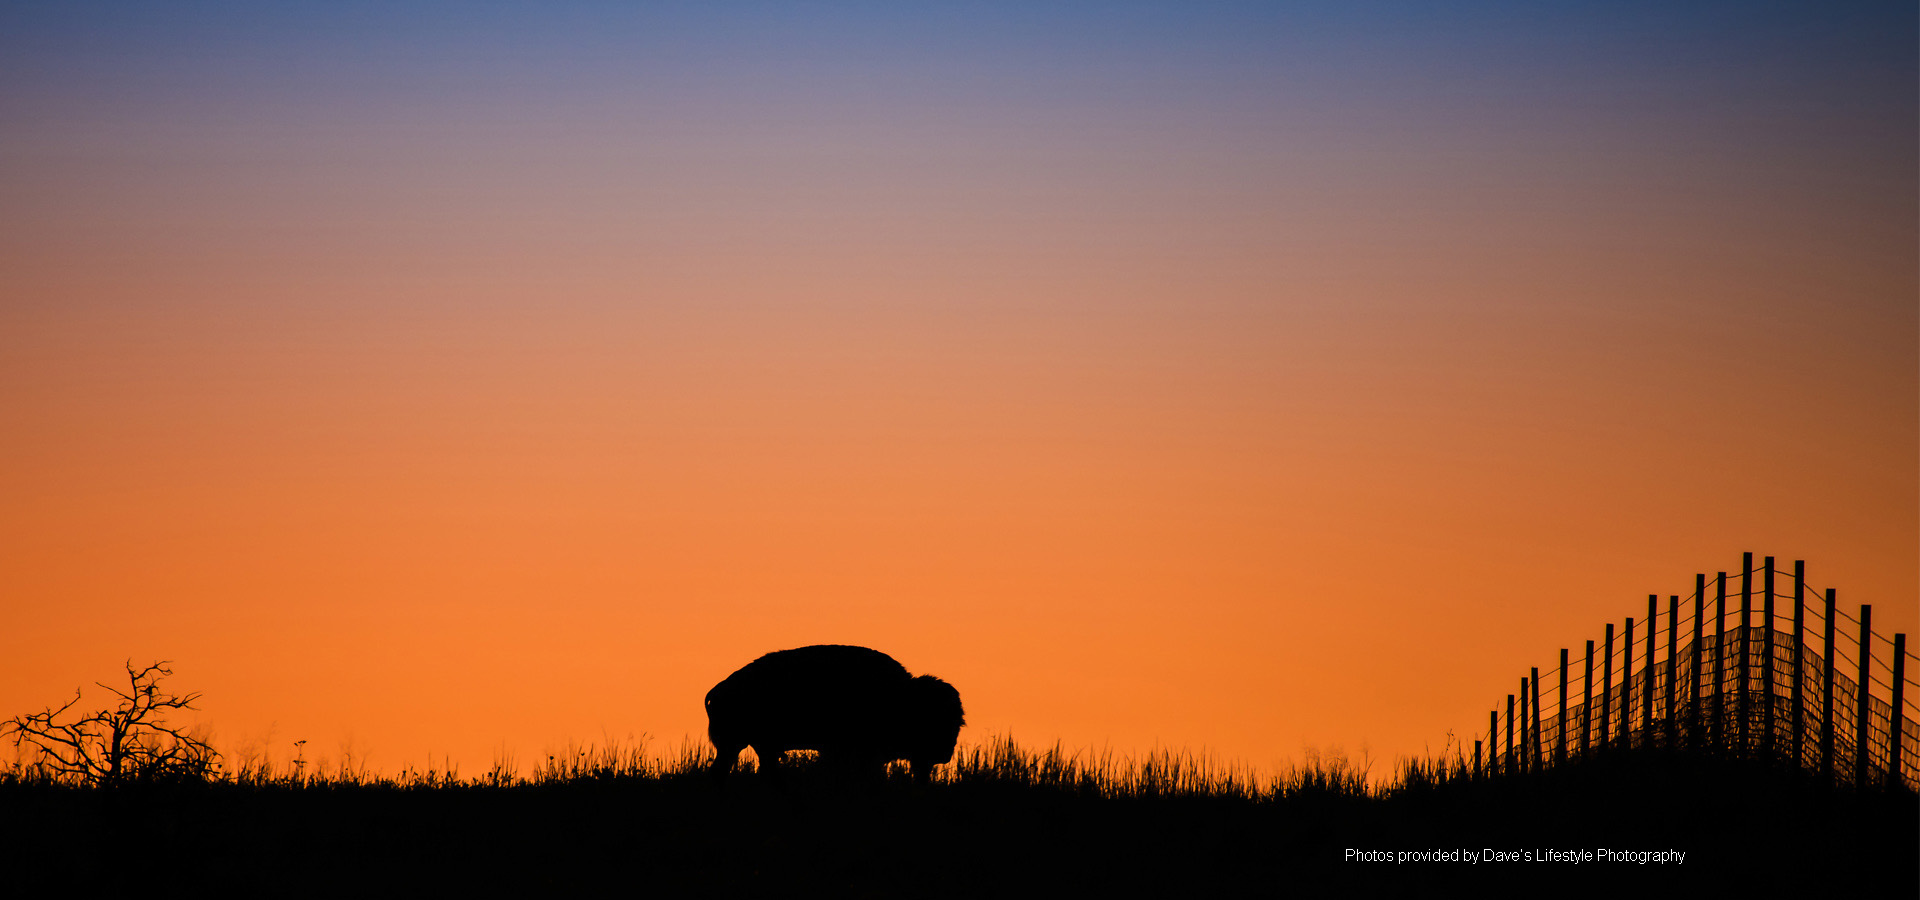 Buffalo Image by Dave's Lifestyle Photography